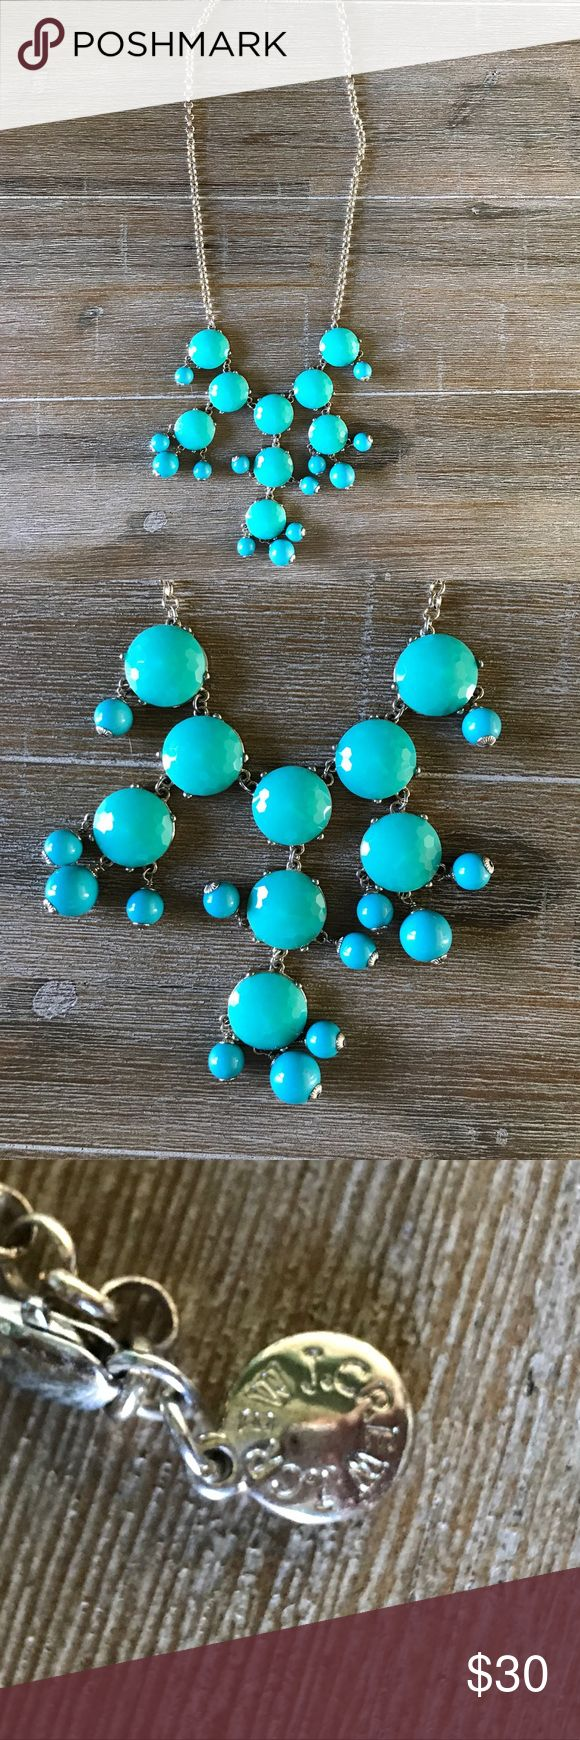 Authentic J. Crew Turquoise Bubble Necklace The smaller version of the popular J. Crew bubble necklace! Was really hard to get my hands on when they first came out, but it's finally time to pass it along to a new fashionable home! J. Crew Jewelry Necklaces